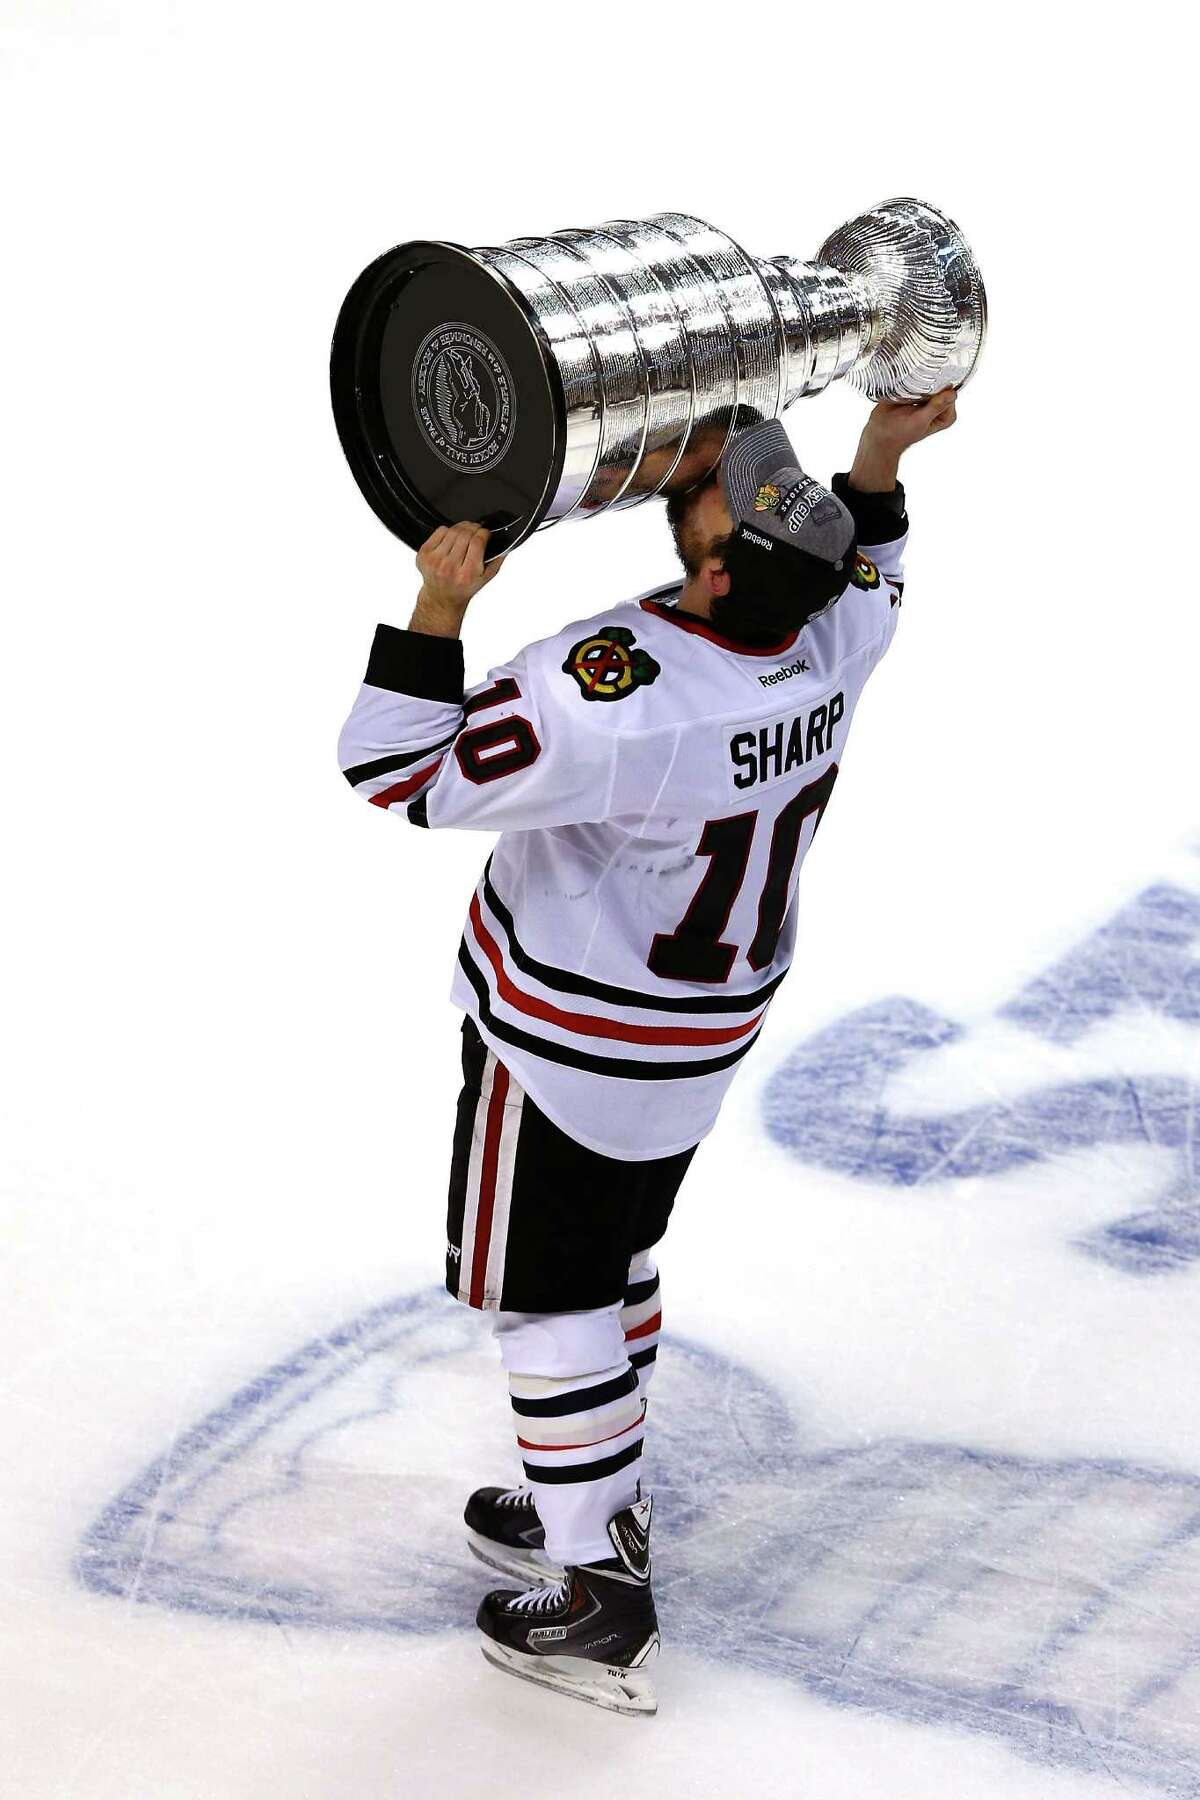 Game 6: Chicago 3, Boston 2 BOSTON, MA - JUNE 24: Patrick Sharp #10 of the Chicago Blackhawks kisses the Stanley Cup as he celebrates after they won 3-2 against the Boston Bruins in Game Six of the 2013 NHL Stanley Cup Final at TD Garden on June 24, 2013 in Boston, Massachusetts.